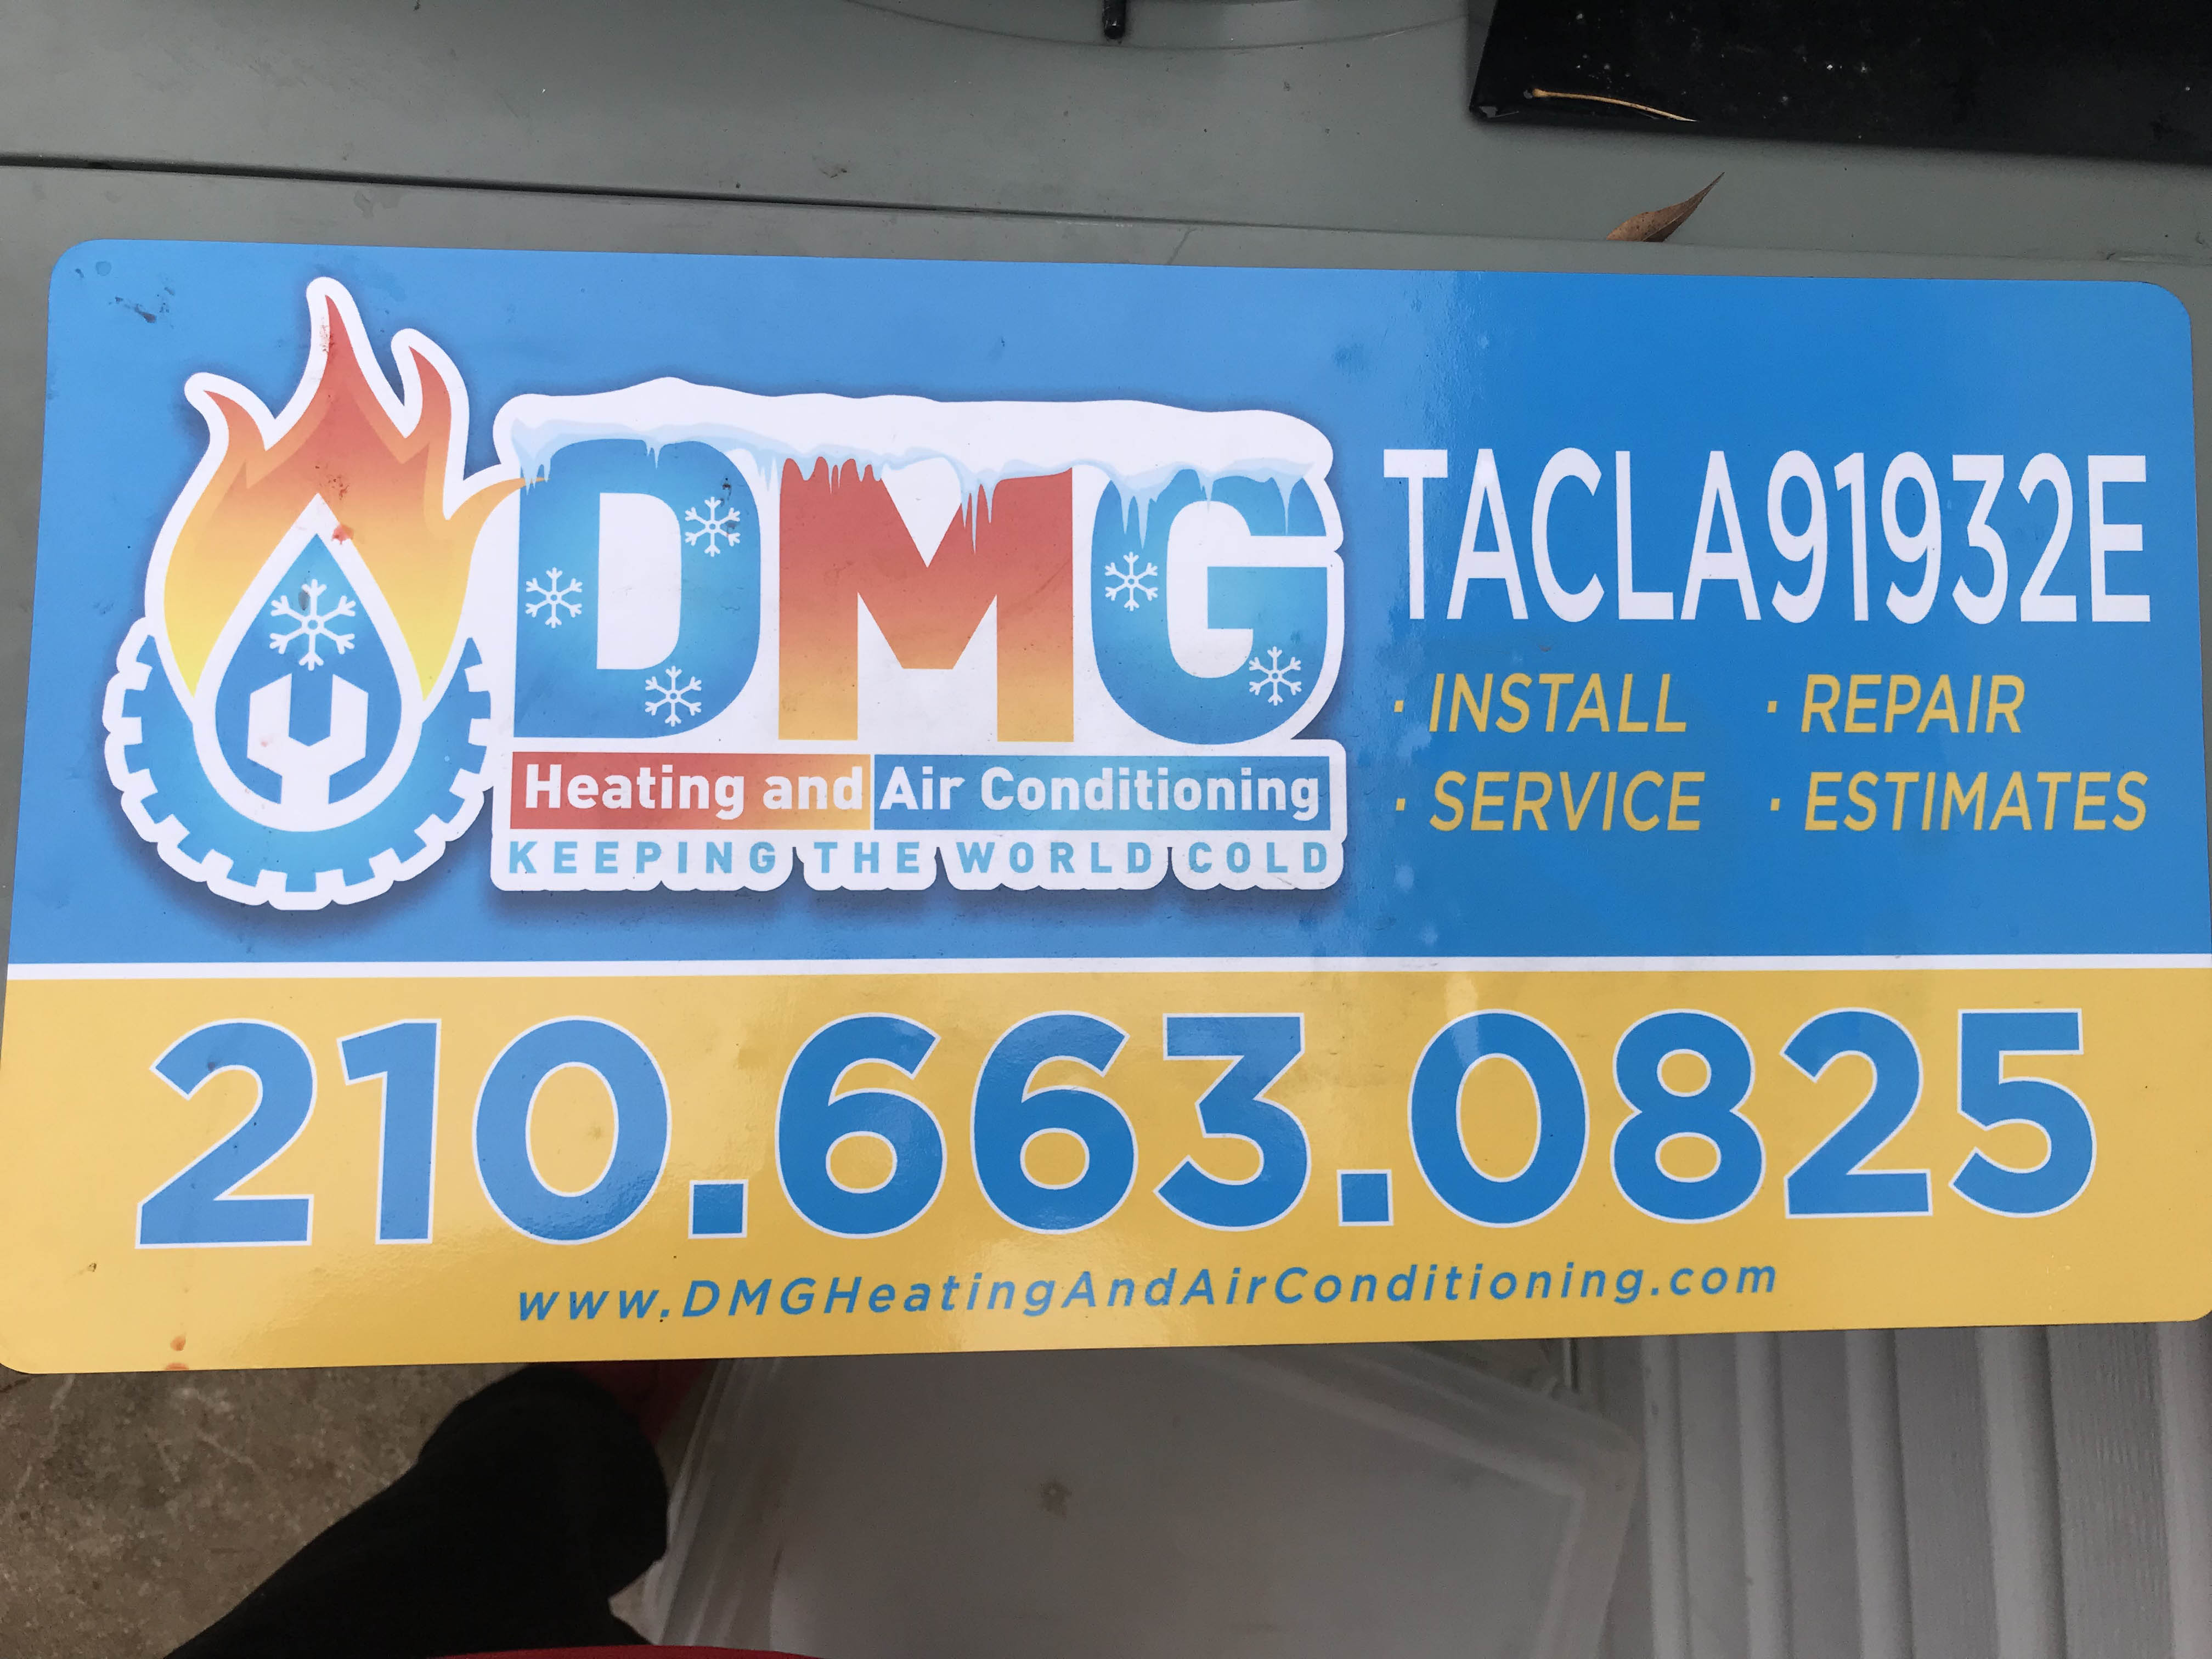 Dmg Heating And Air Conditioning Llc For R22 Refrigerant